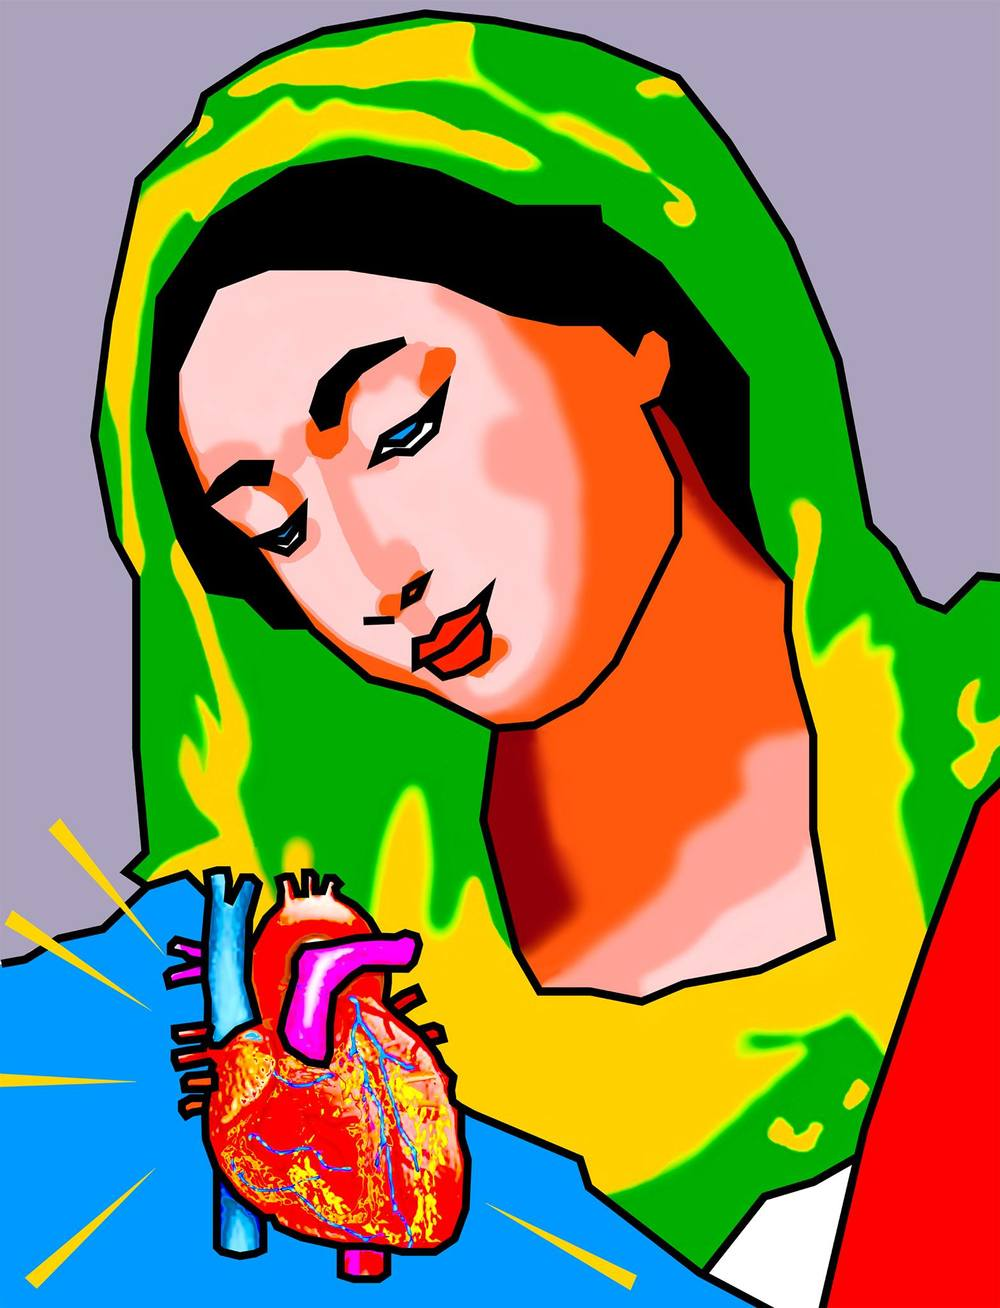 MADONNA AND HEART, Digital Canvas, British Heart Foundation Appeal,2010/11,Duggie Fields